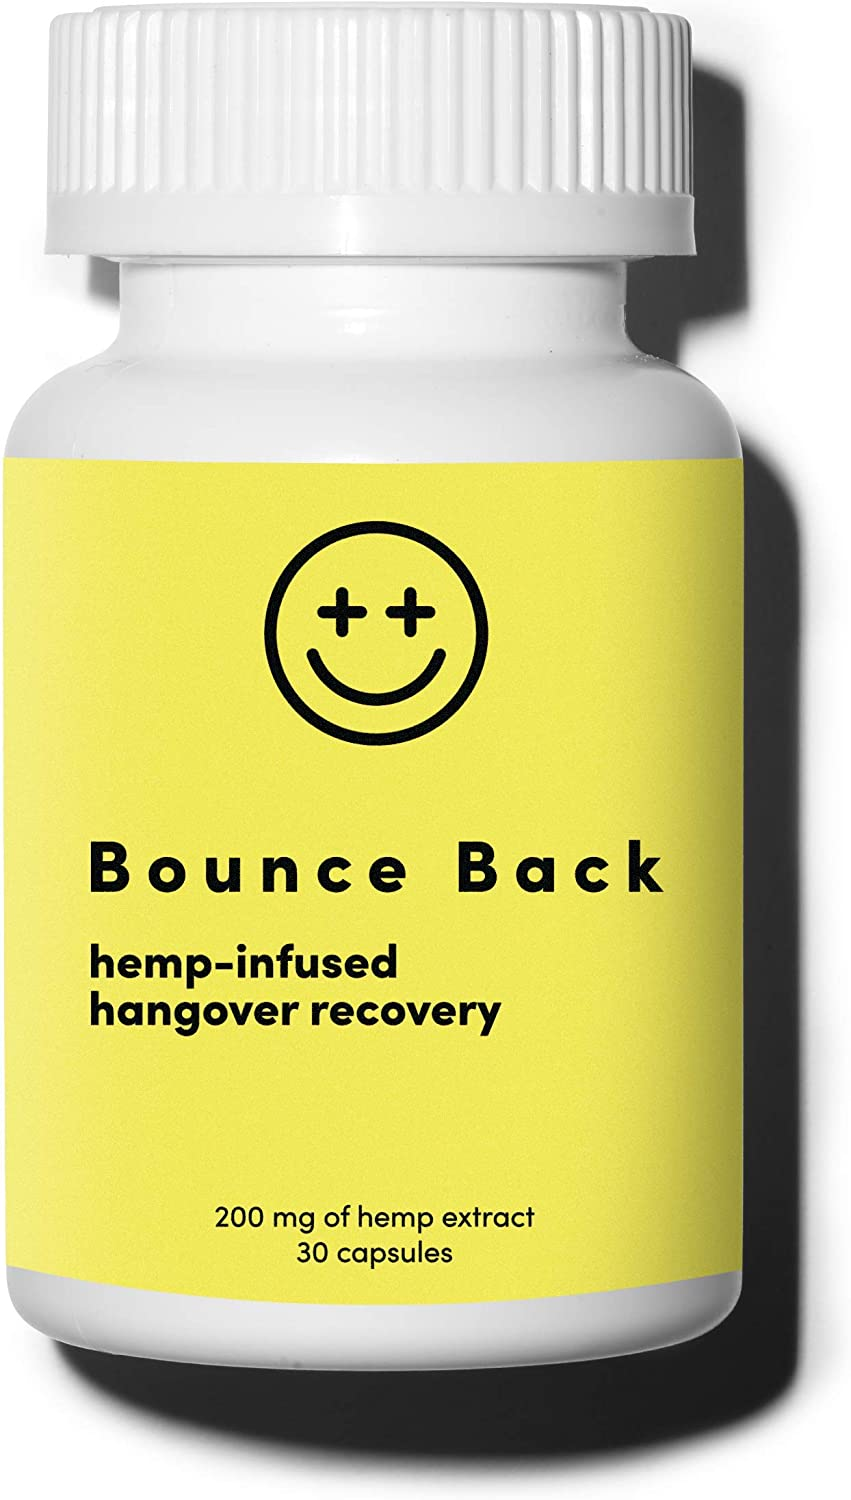 Bounce Back Hangover Cure and Prevention Pills (30 Capsules) - After Drink Recovery & After Alcohol Relief Aid with Dihydromyricetin (DHM), Hemp Extract, Milk Thistle, Prickly Pear Extract, B Vitamins